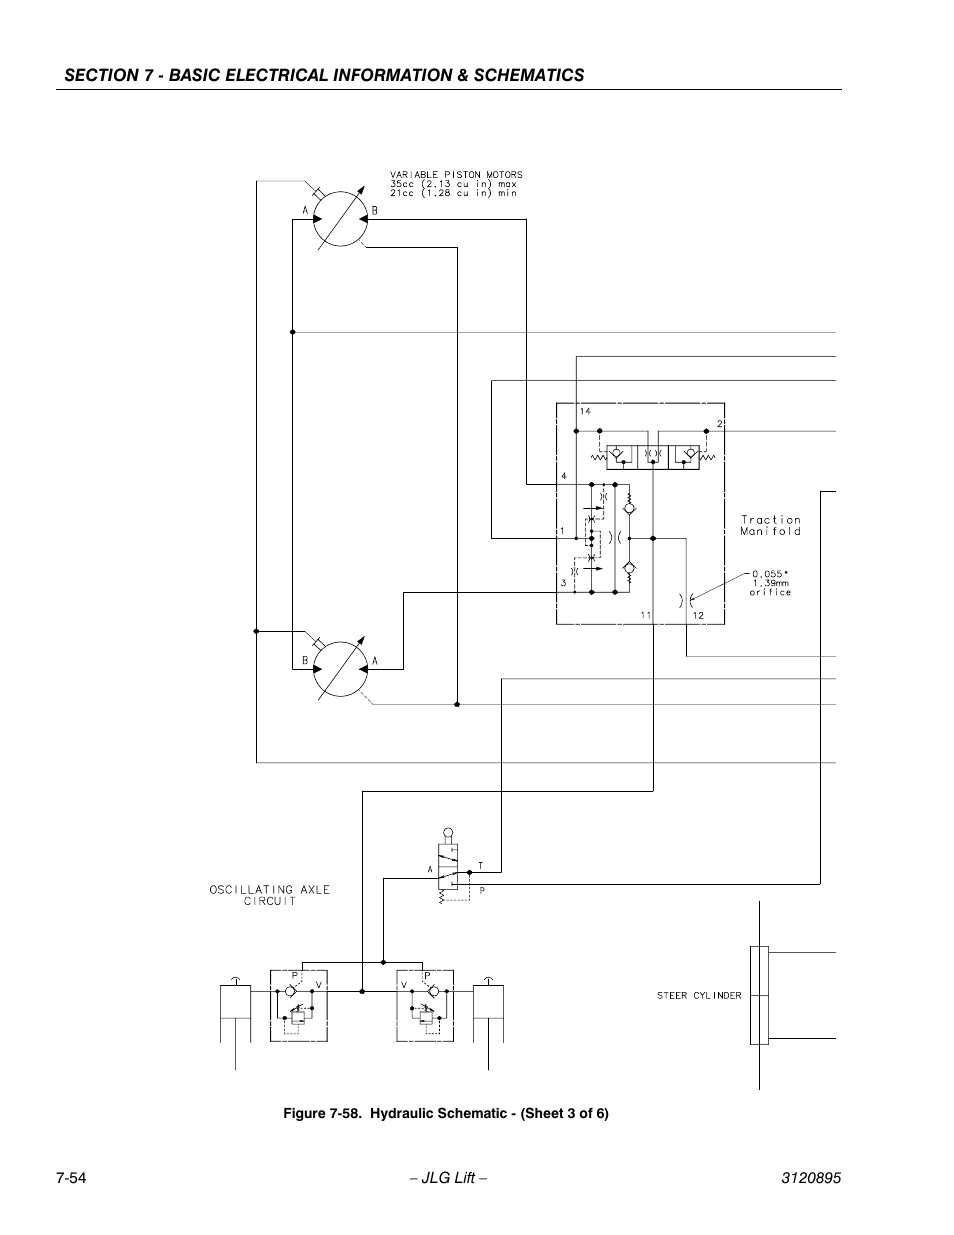 Hydraulic schematic - (sheet 3 of 6) -54 | JLG 460SJ Service Manual User  Manual | Page 456 / 462